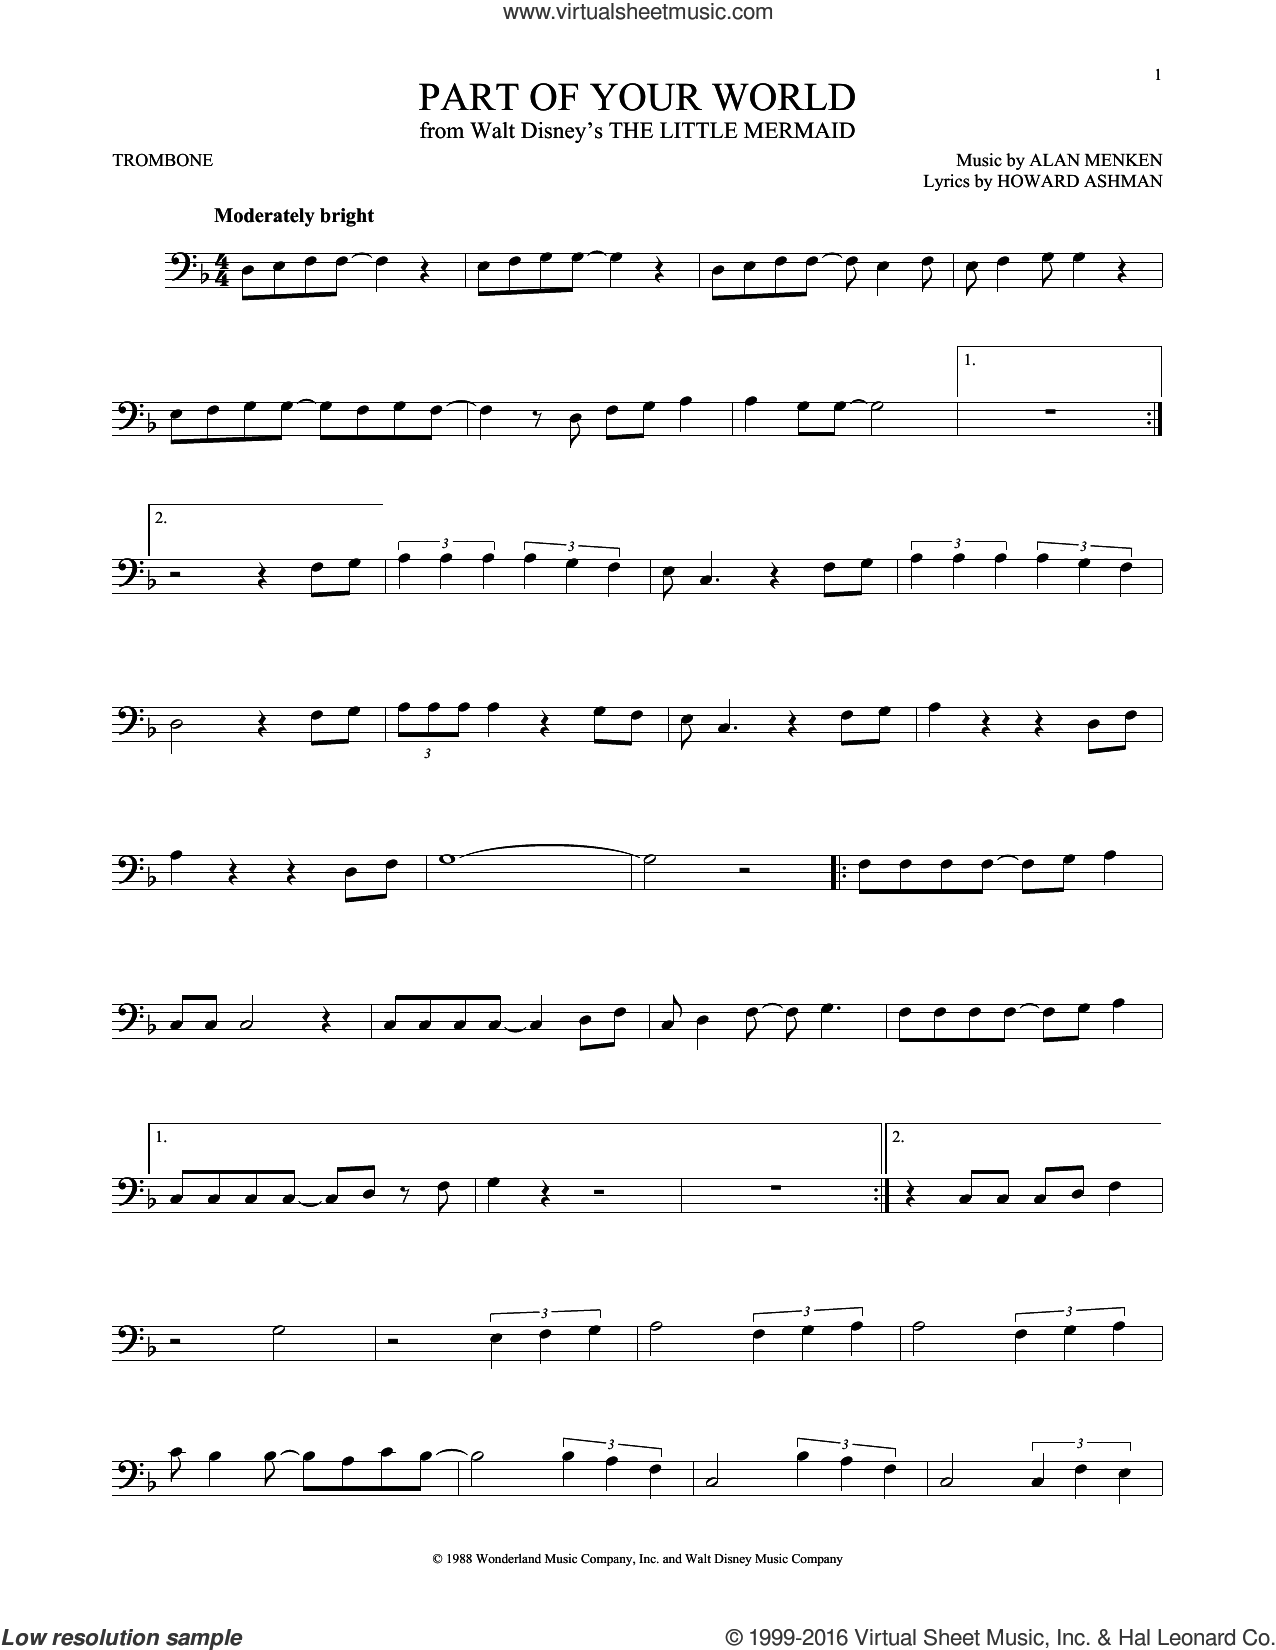 Part Of Your World sheet music for trombone solo by Alan Menken, Alan Menken & Howard Ashman and Howard Ashman, intermediate skill level